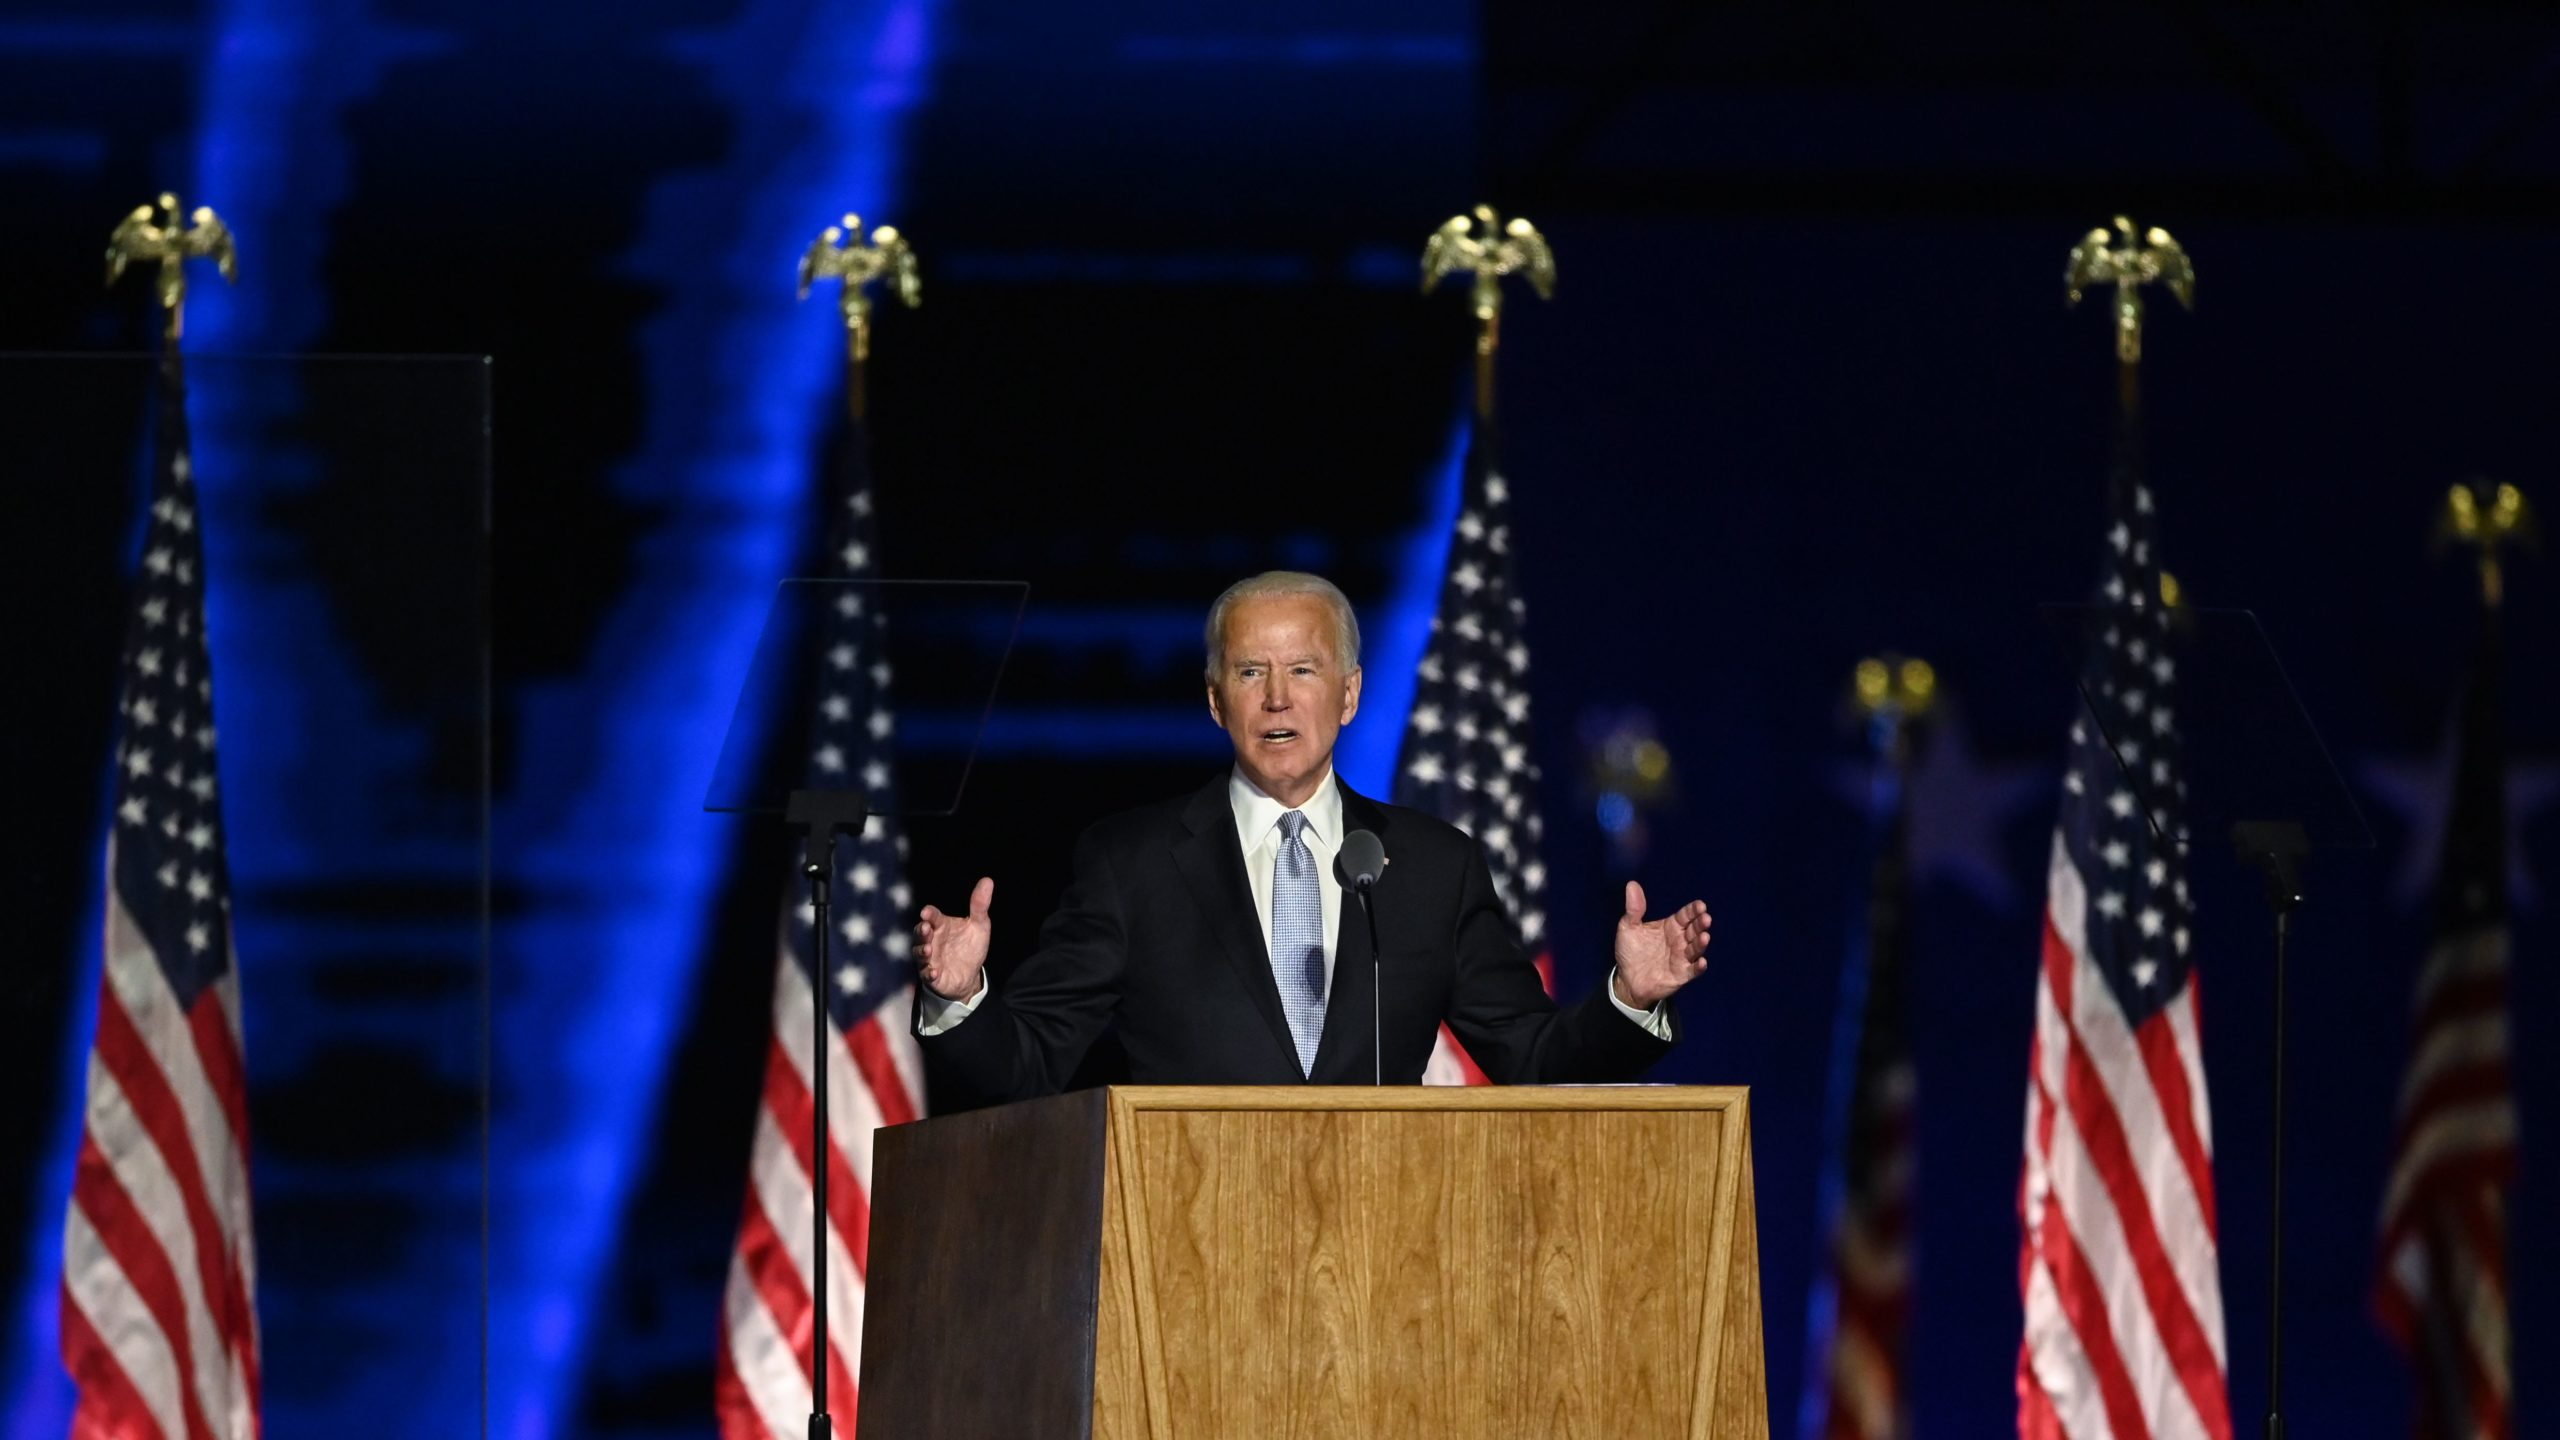 TOPSHOT - US President-elect Joe Biden delivers remarks in Wilmington, Delaware, on November 7, 2020, after being declared the winner of the presidential election. (Photo by Jim WATSON / AFP) (Photo by JIM WATSON/AFP via Getty Images)